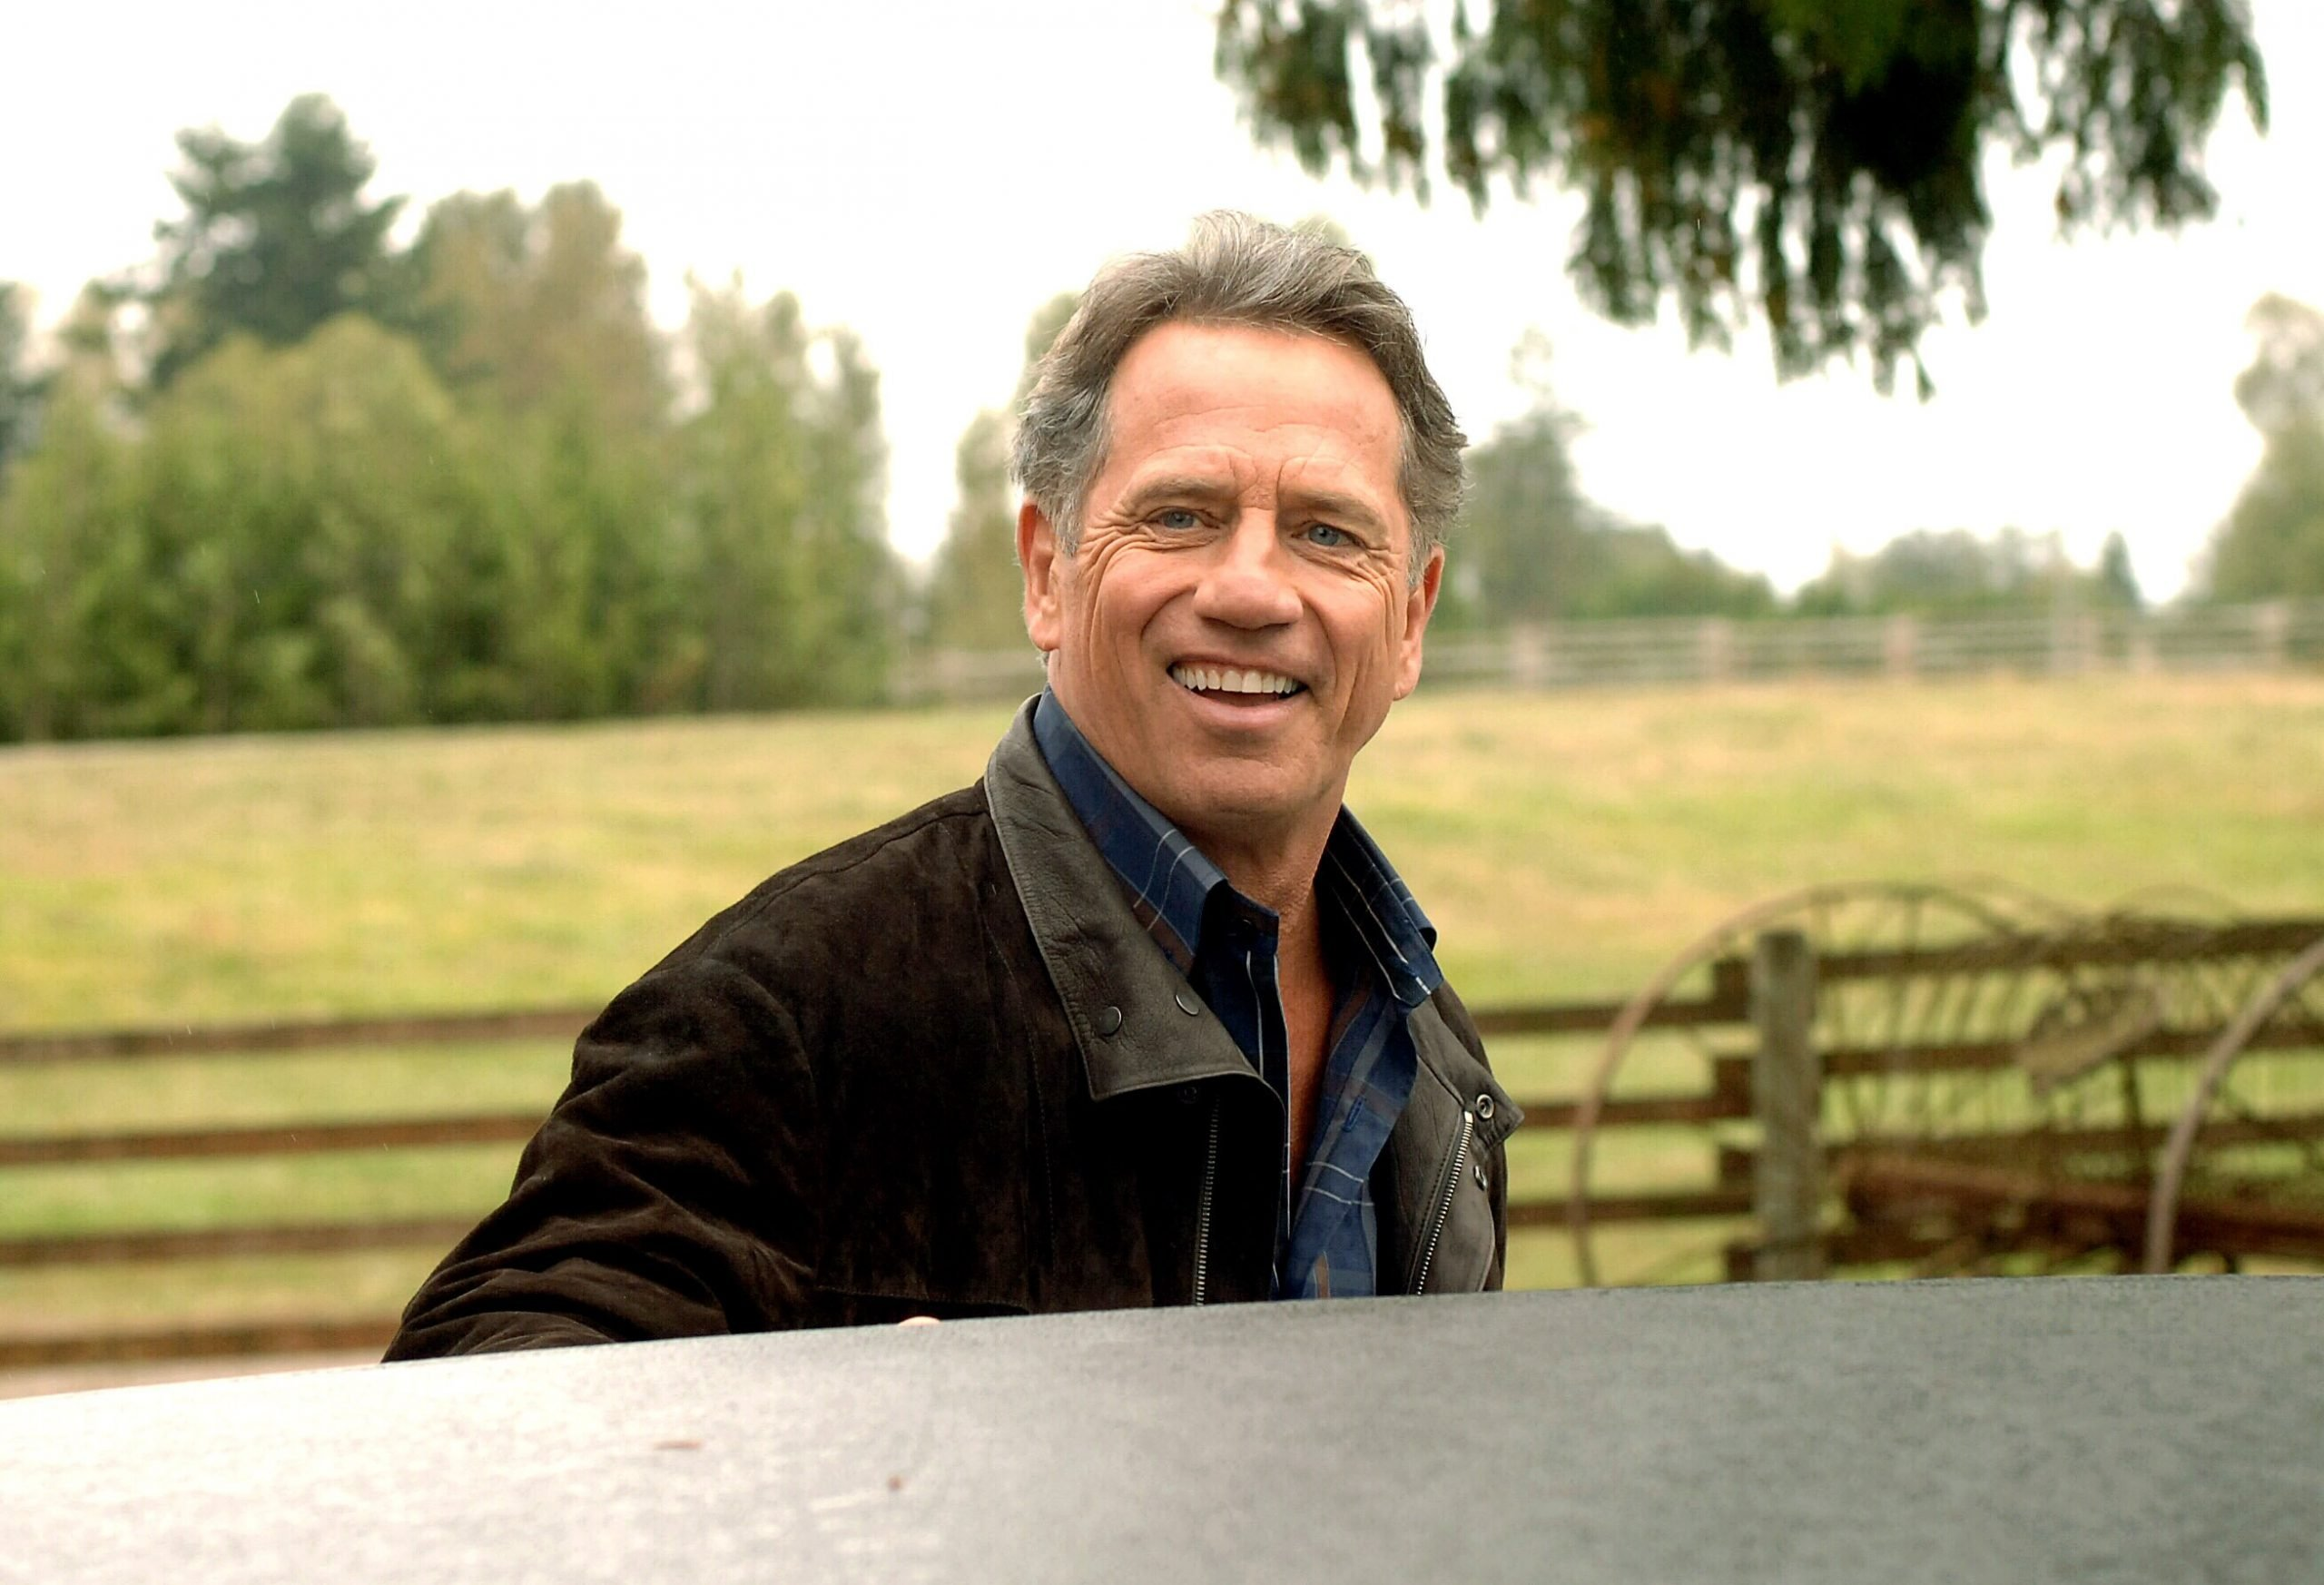 Tom Wopat on Smallville